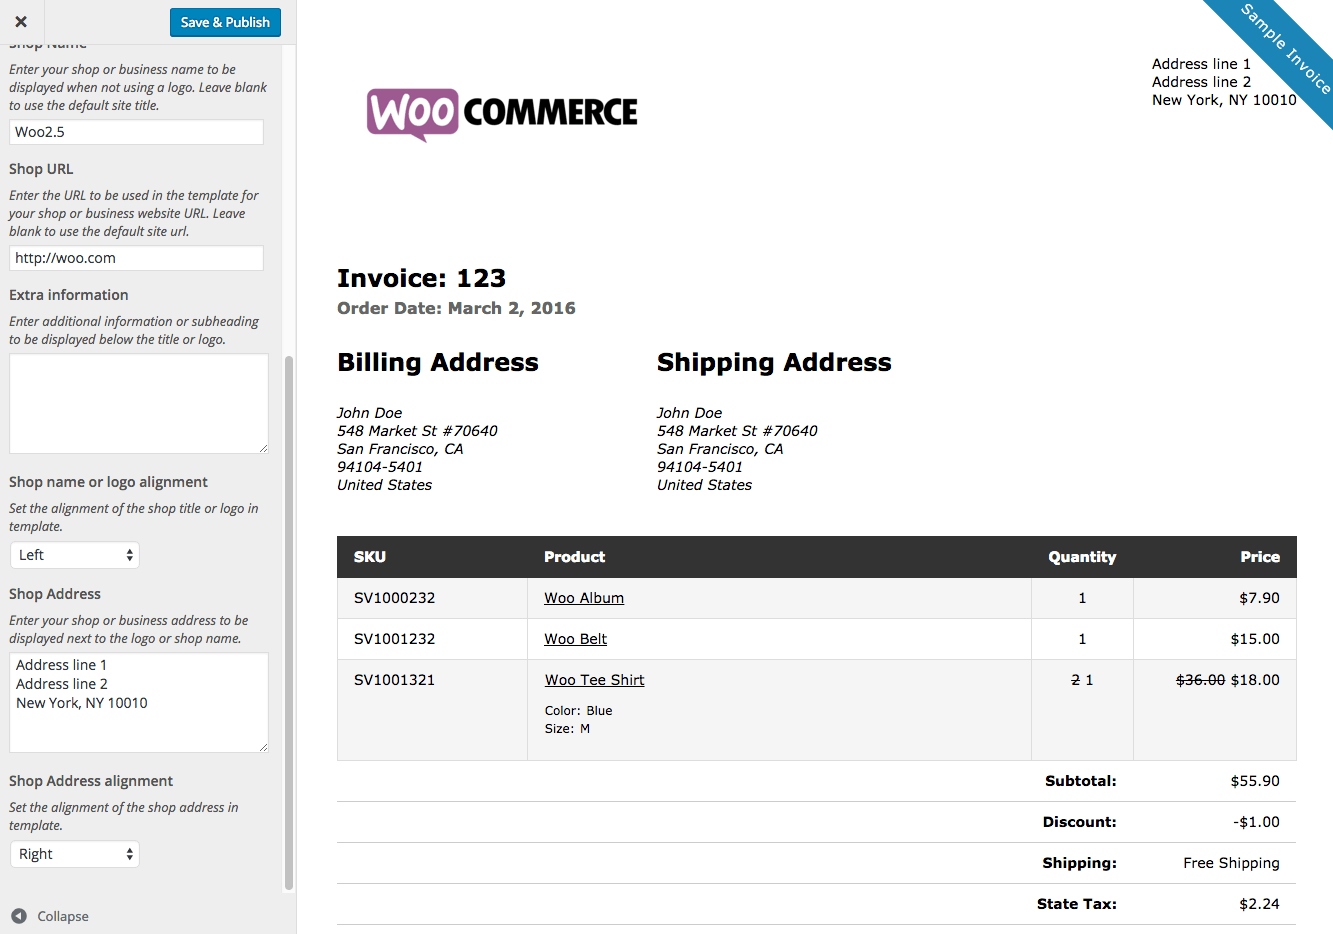 Soulfulpowerus  Personable Woocommerce Print Invoices Amp Packing Lists  Woocommerce Docs With Fetching Woocommerce Print Invoices  Packing Lists Customizer With Lovely Fake Invoice Also Design Invoice In Addition Word Template Invoice And Blank Invoice Template Word As Well As What Is Invoice Number Additionally Lexis Power Invoice From Docswoocommercecom With Soulfulpowerus  Fetching Woocommerce Print Invoices Amp Packing Lists  Woocommerce Docs With Lovely Woocommerce Print Invoices  Packing Lists Customizer And Personable Fake Invoice Also Design Invoice In Addition Word Template Invoice From Docswoocommercecom